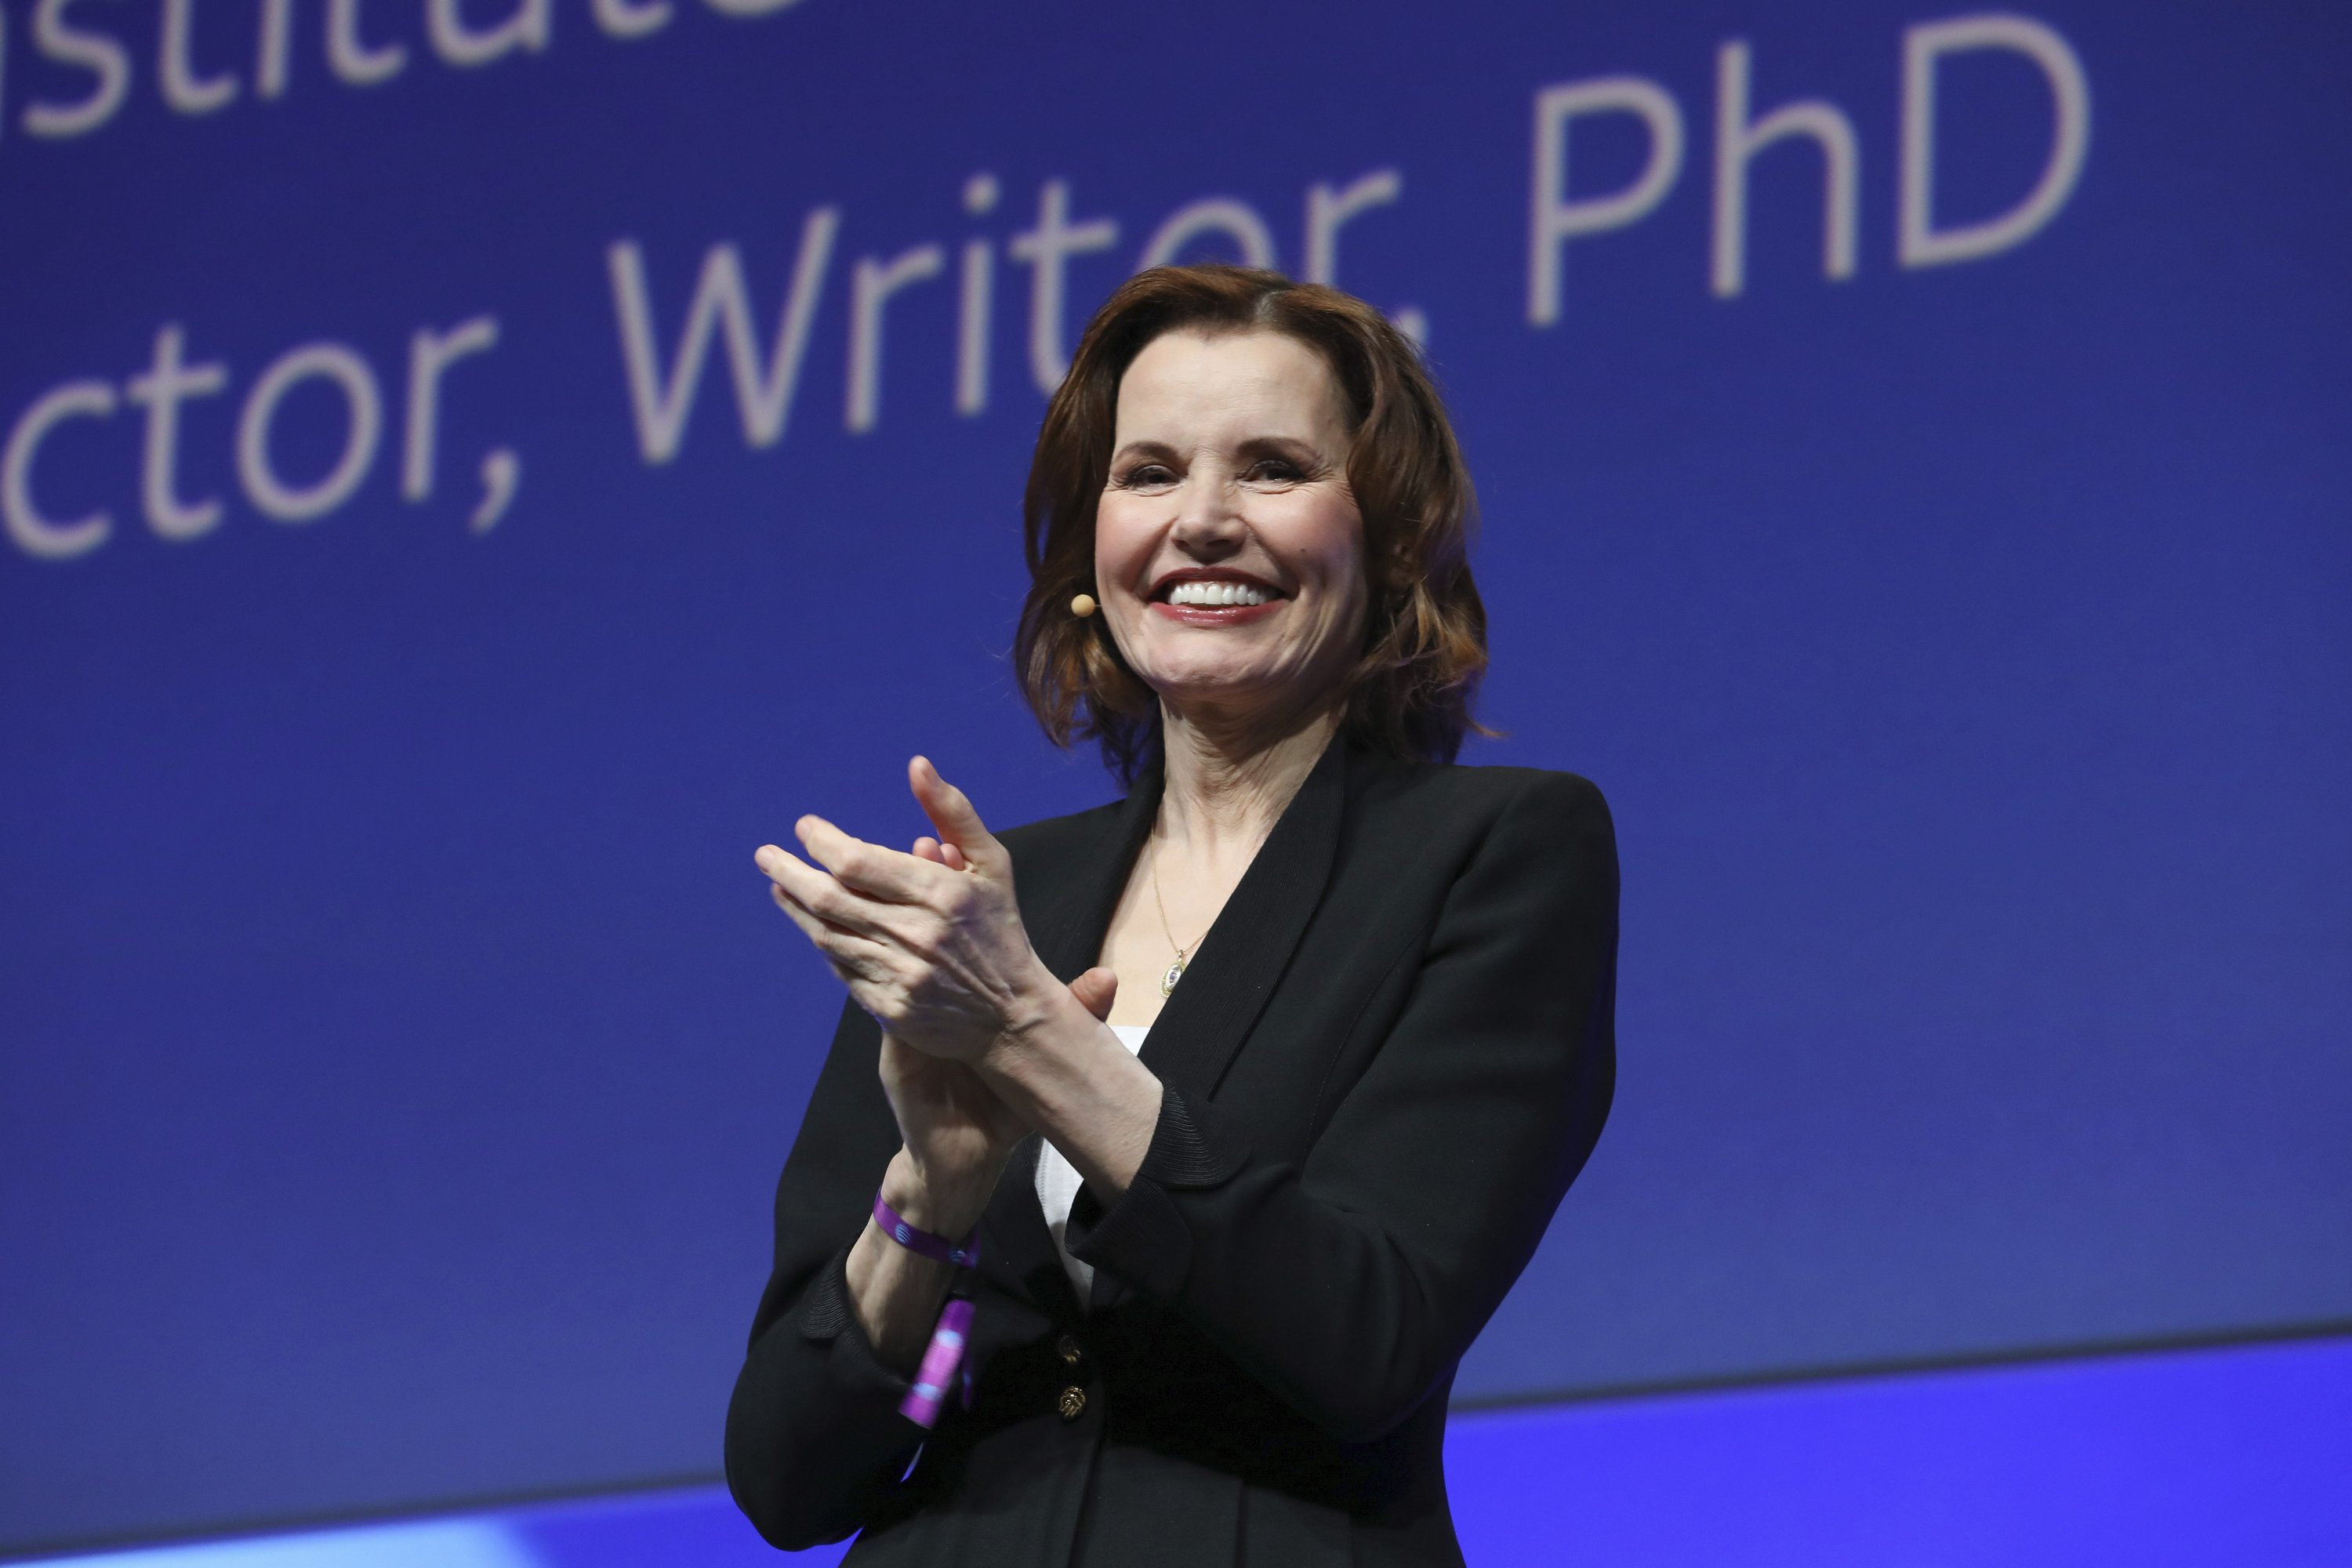 Screenwriters can play key role in gender parity, actors say